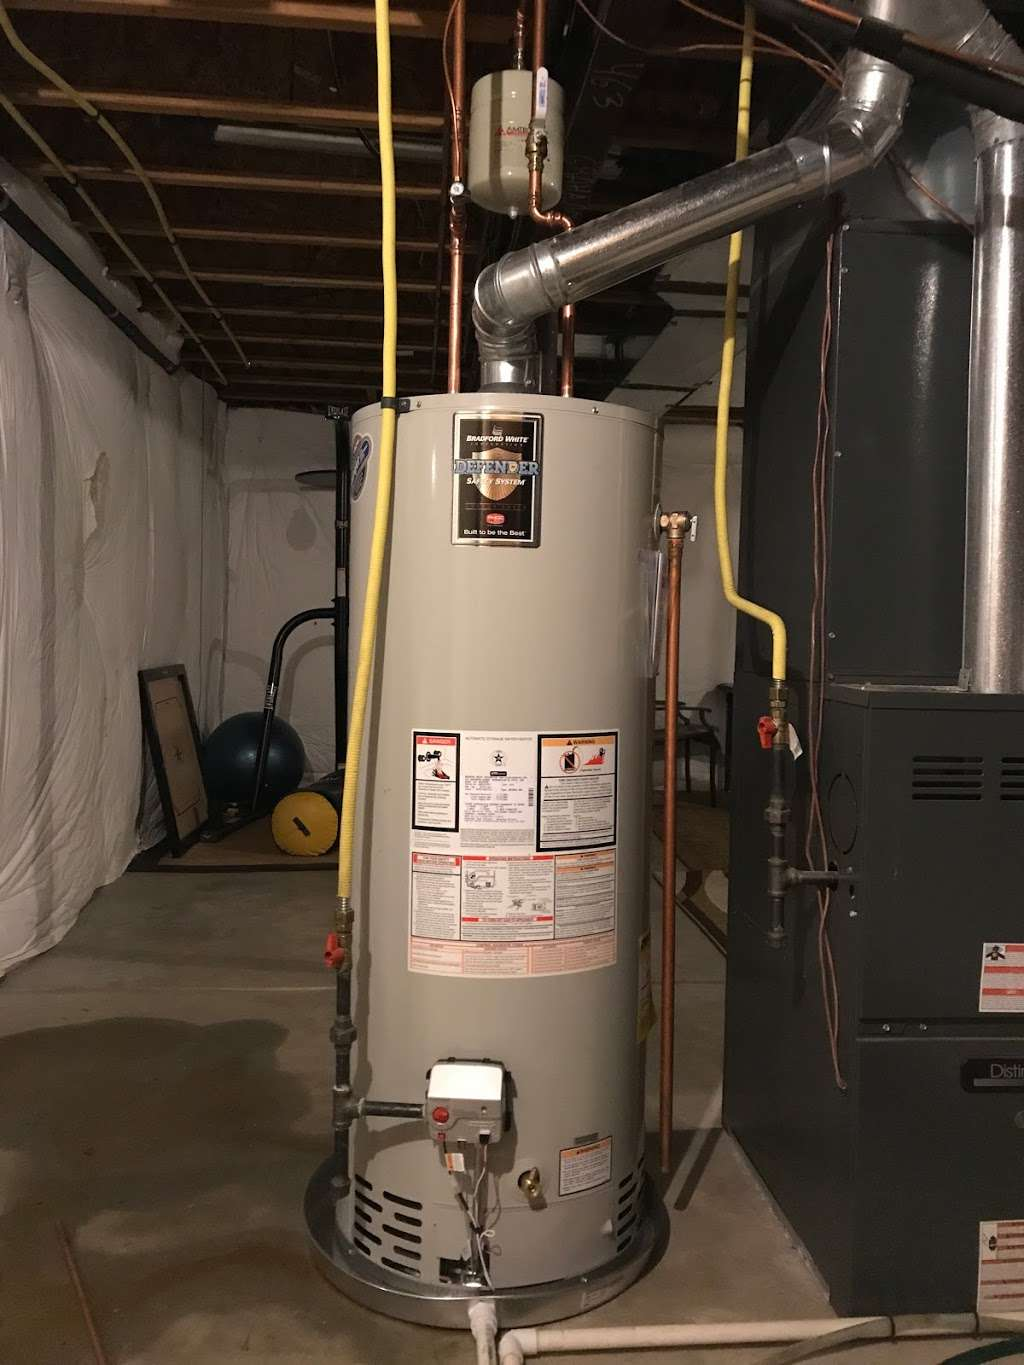 Hardline Plumbing and Heating - plumber  | Photo 7 of 10 | Address: 185 Lawley Dr, Erie, CO 80516, USA | Phone: (720) 576-8211